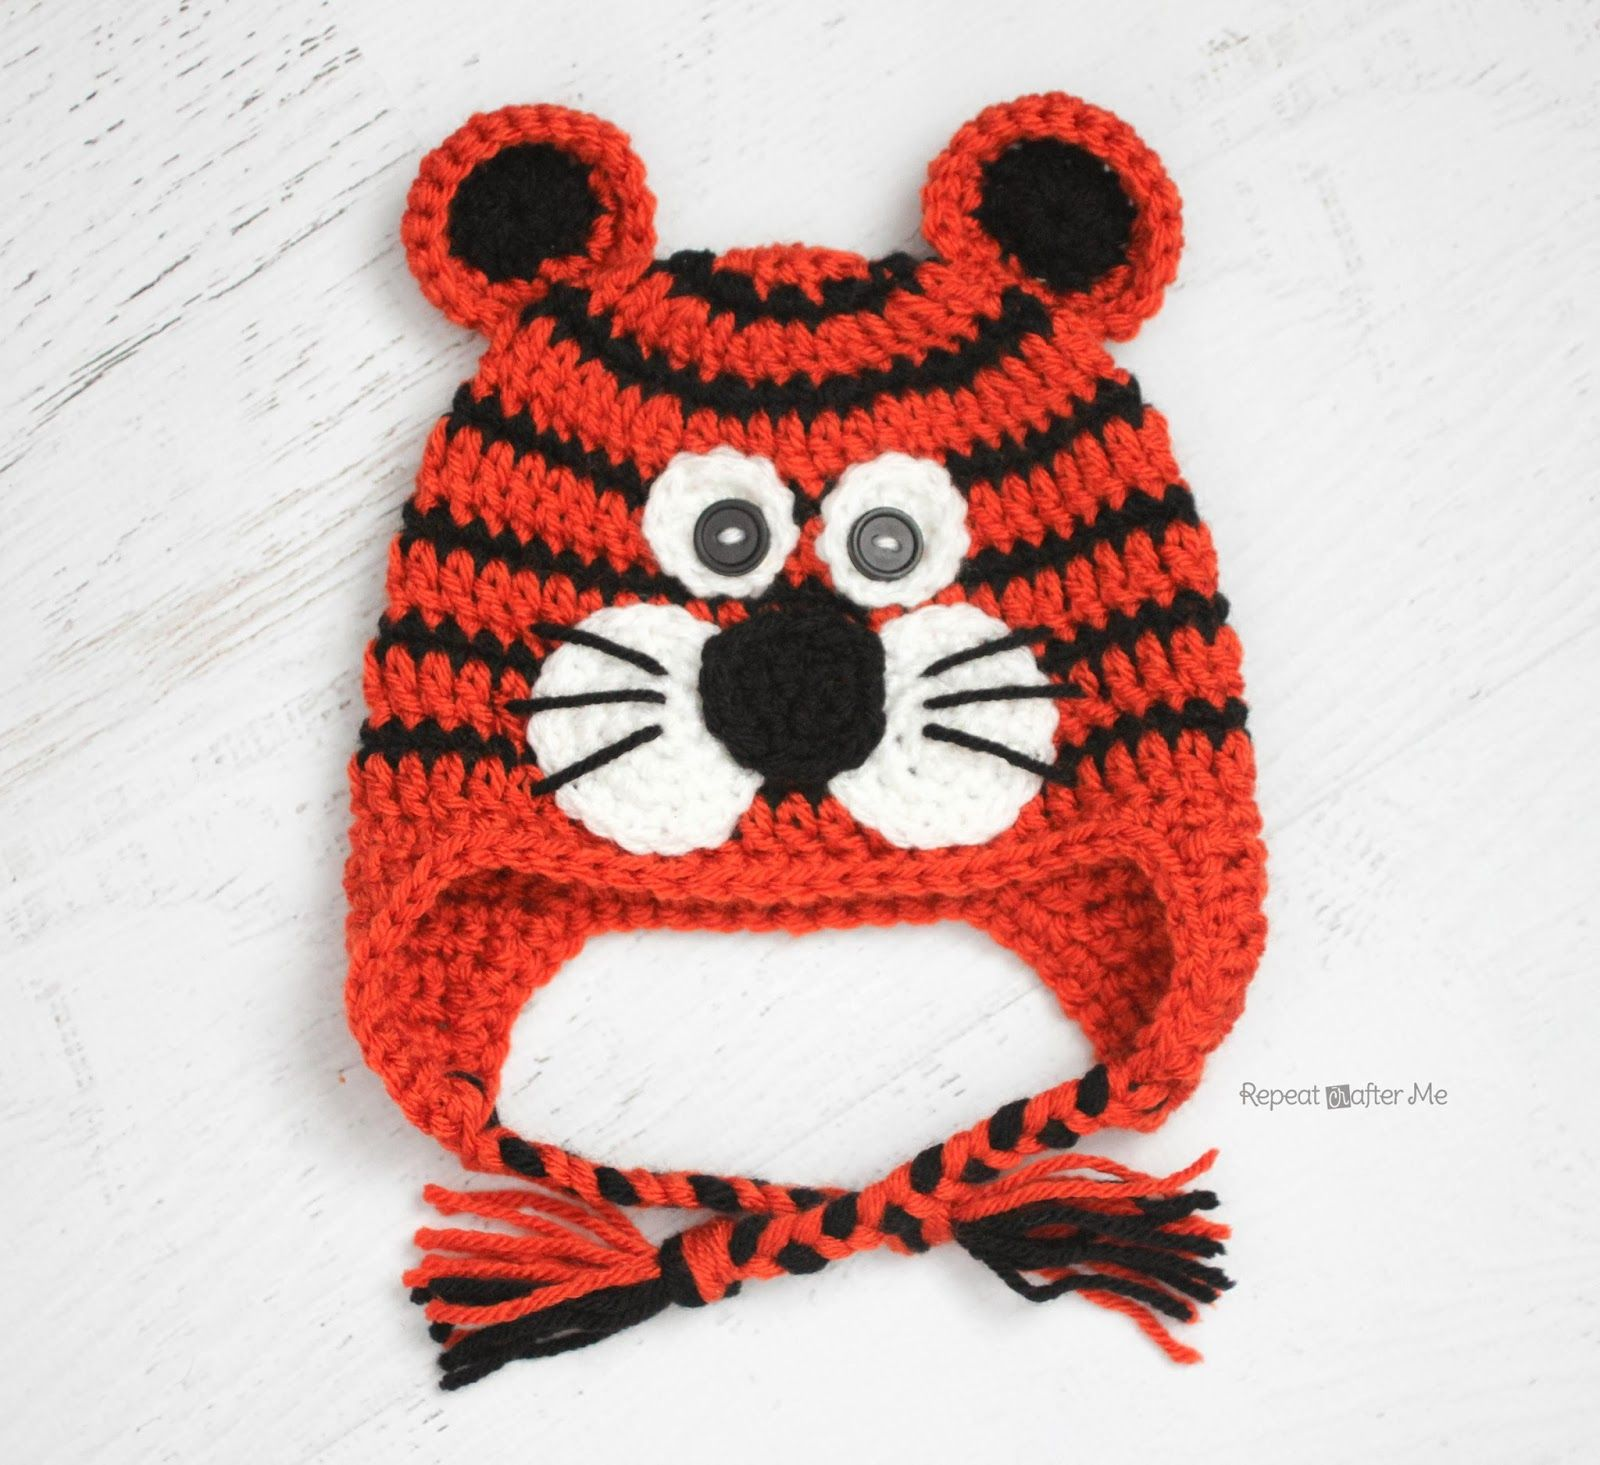 Repeat Crafter Me: Crochet Tiger Hat Pattern | Crochet kids hats ...